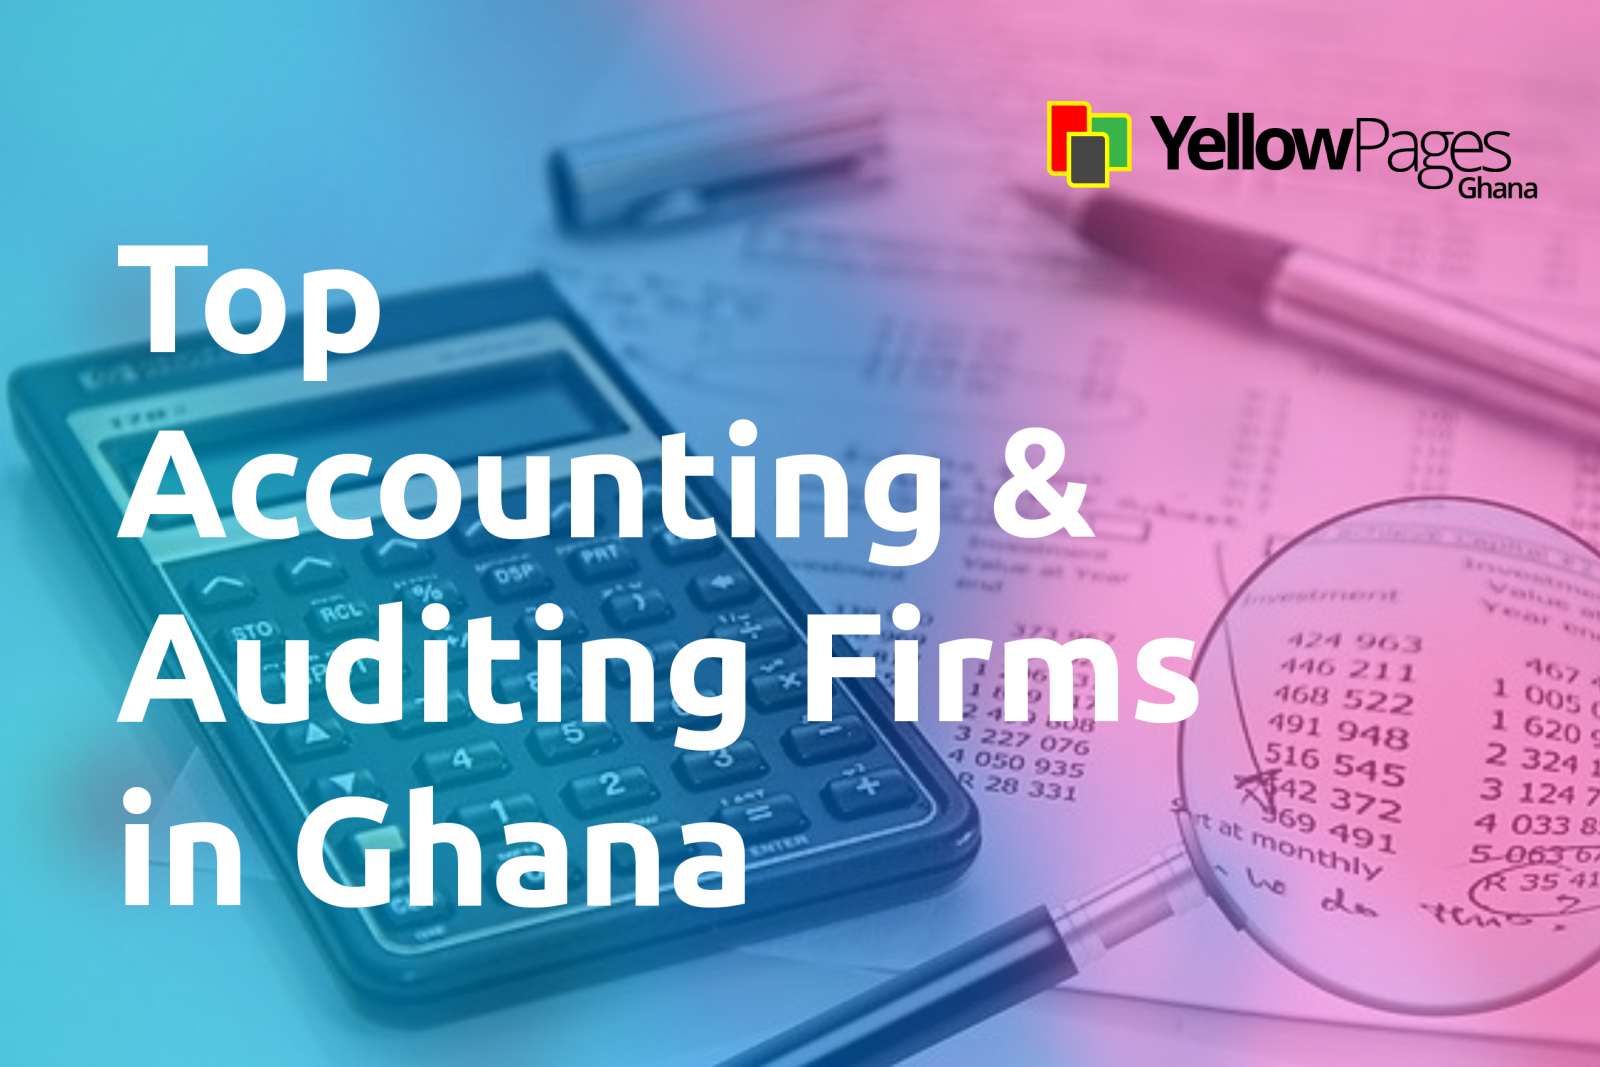 Top Accounting and Auditing Firms in Ghana